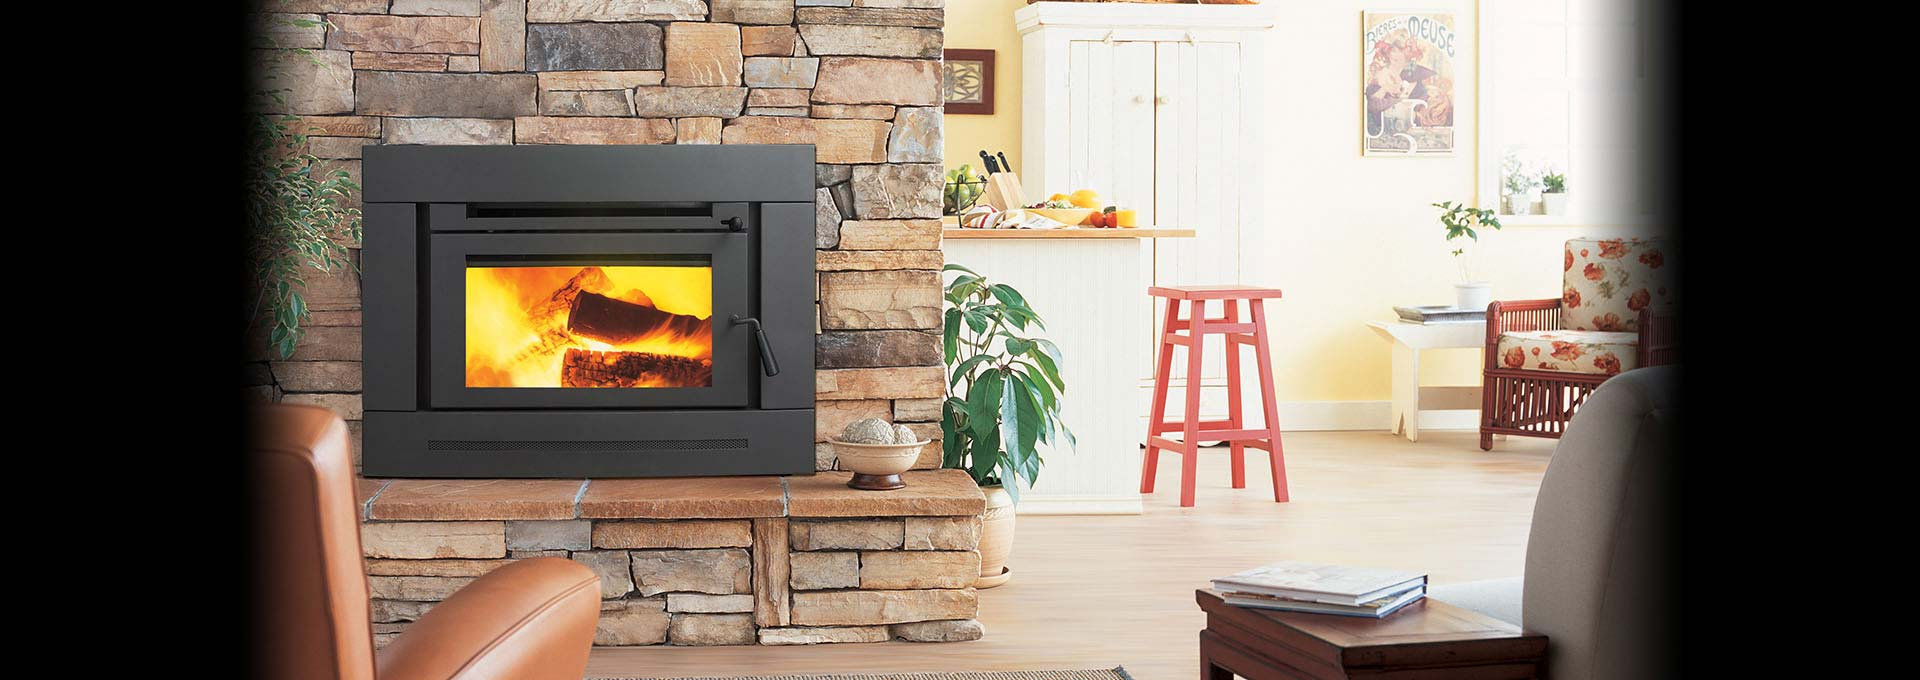 smokey kumaaspeninsert regency insert wood product inserts s medium fireplace stoves